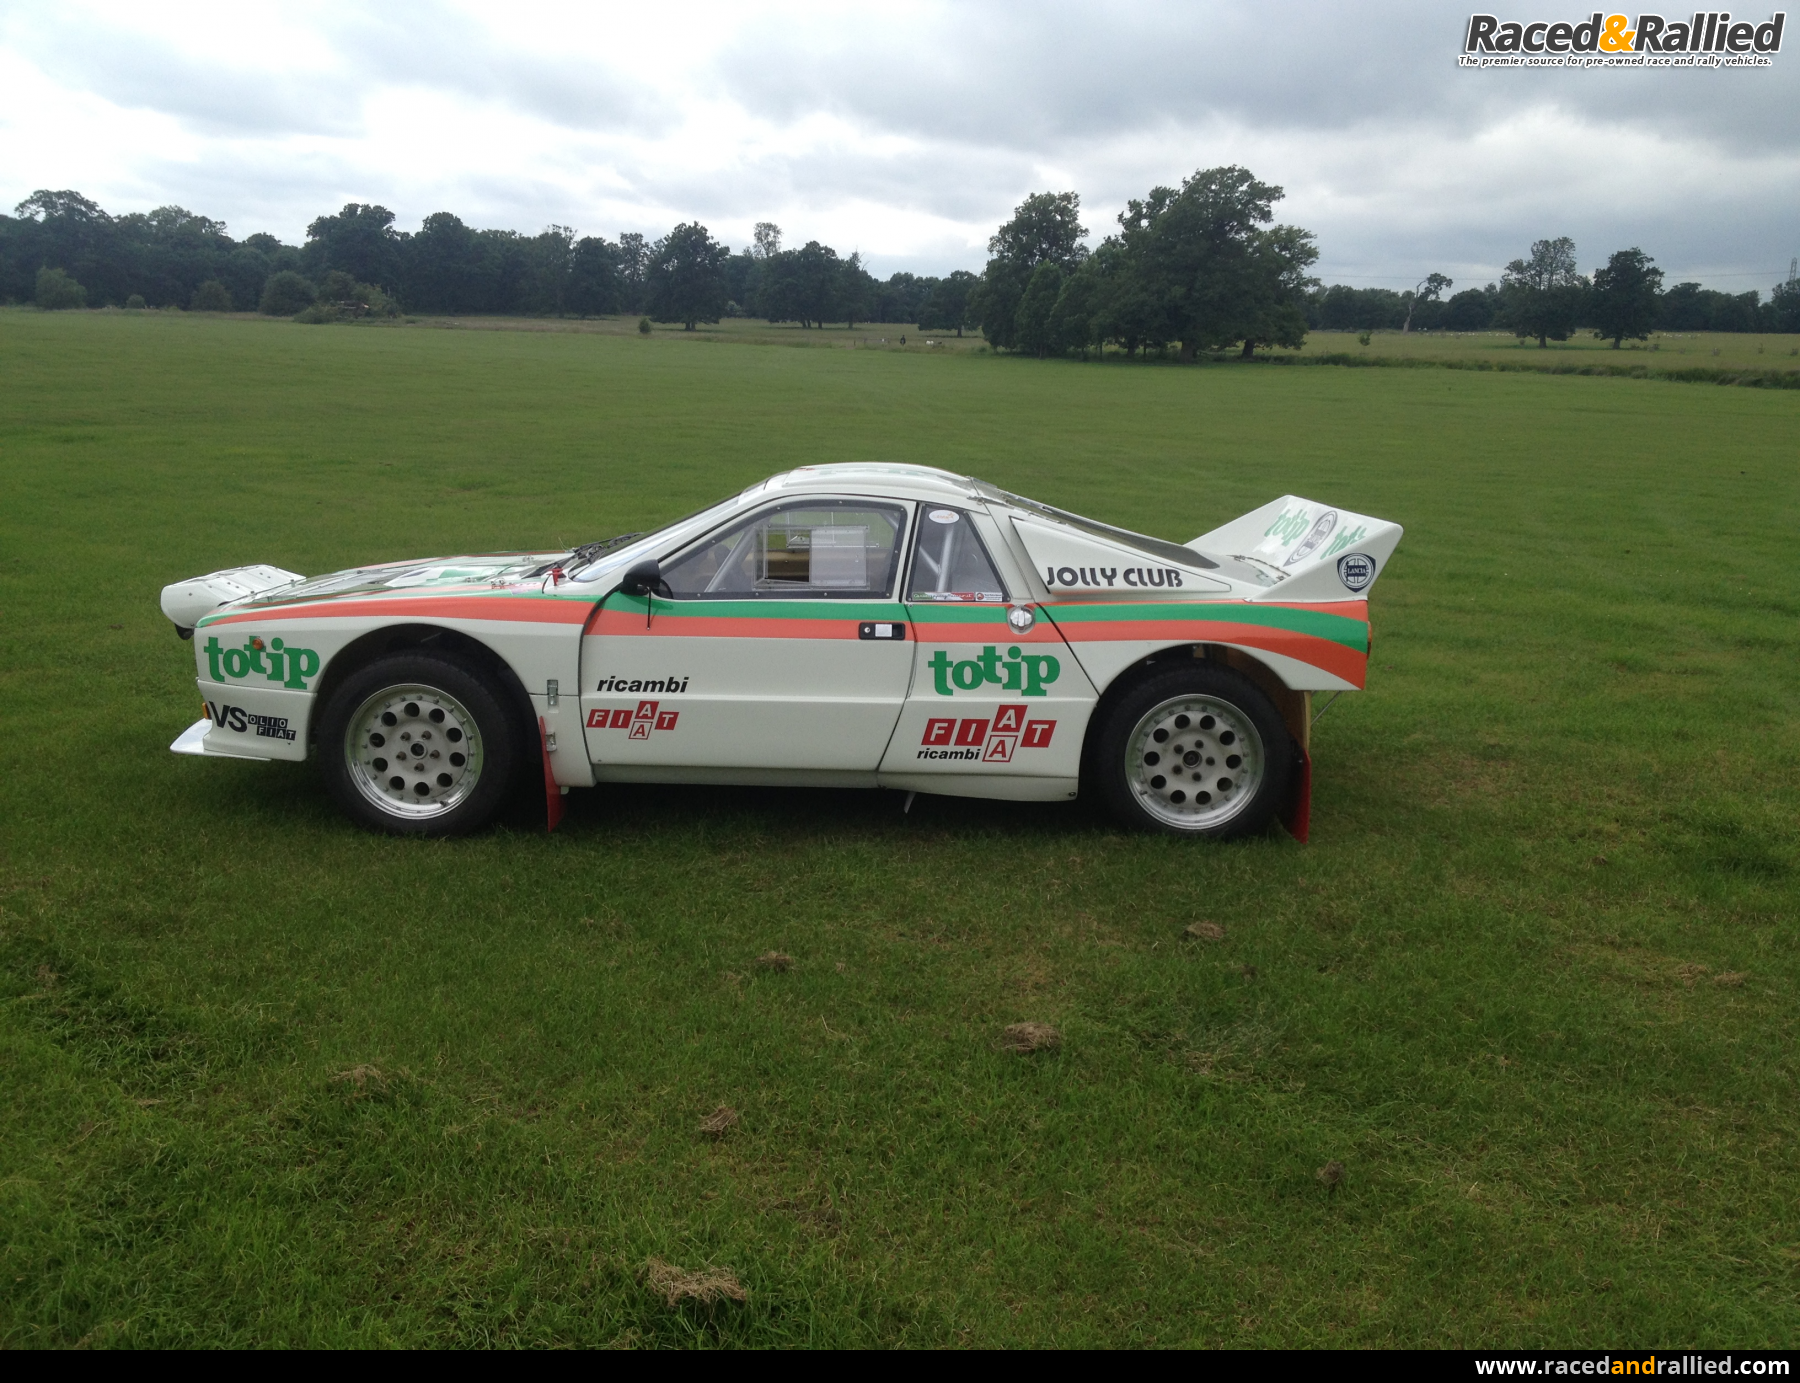 lancia 037 recreation rally cars for sale at raced rallied rally cars for sale race cars. Black Bedroom Furniture Sets. Home Design Ideas